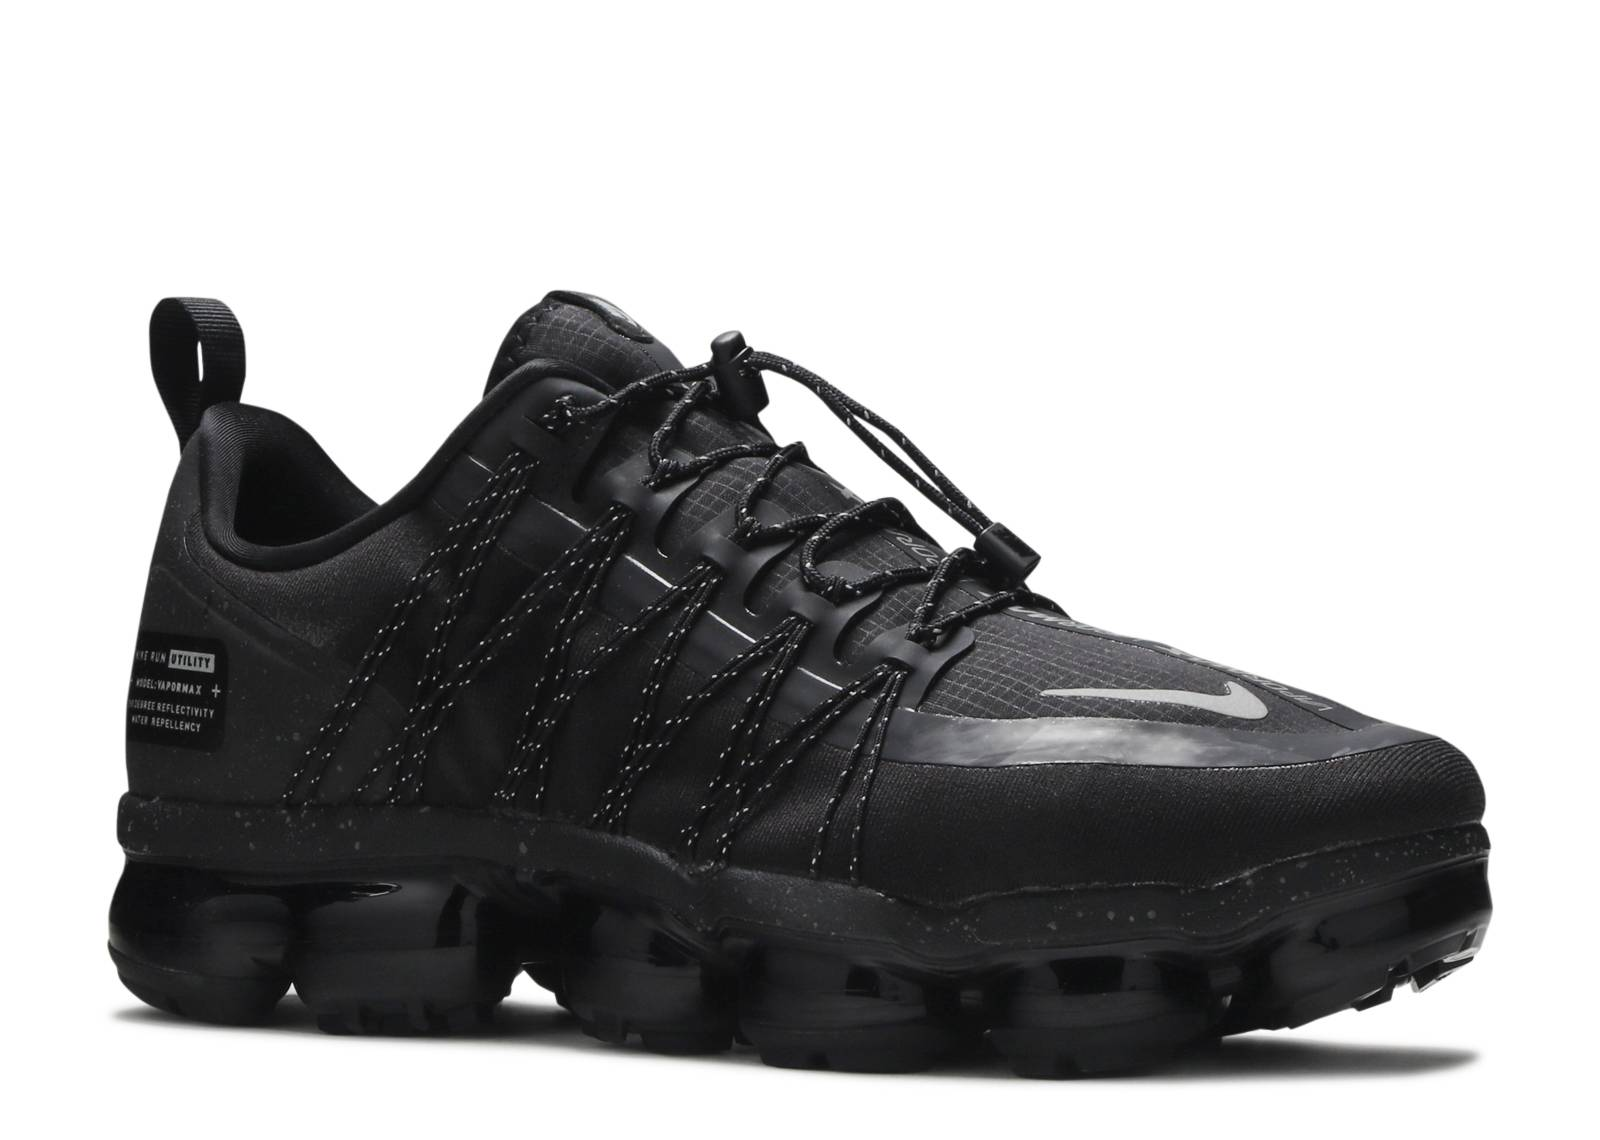 bd0ce7062a97 Nike Air Vapormax Run Utility - Nike - aq8810 003 - black reflect silver -  black